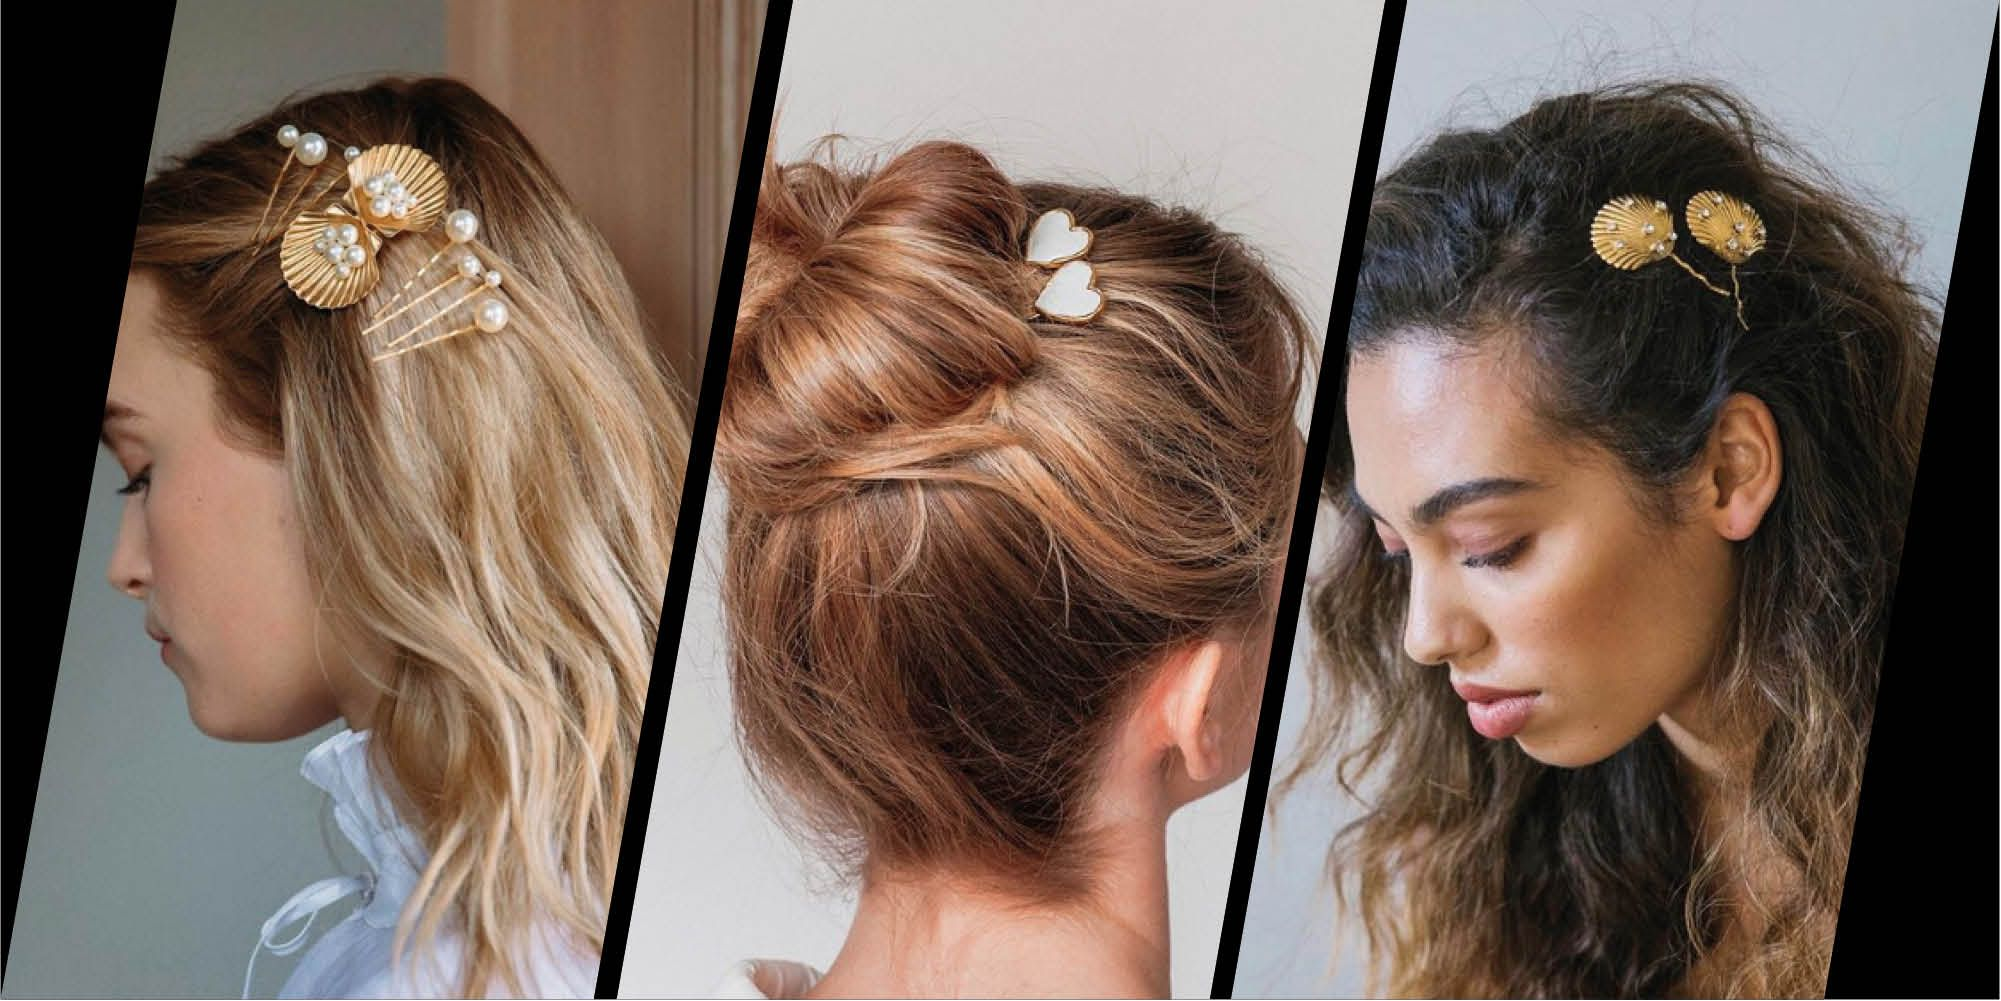 12 ways to style delicate hair accessories